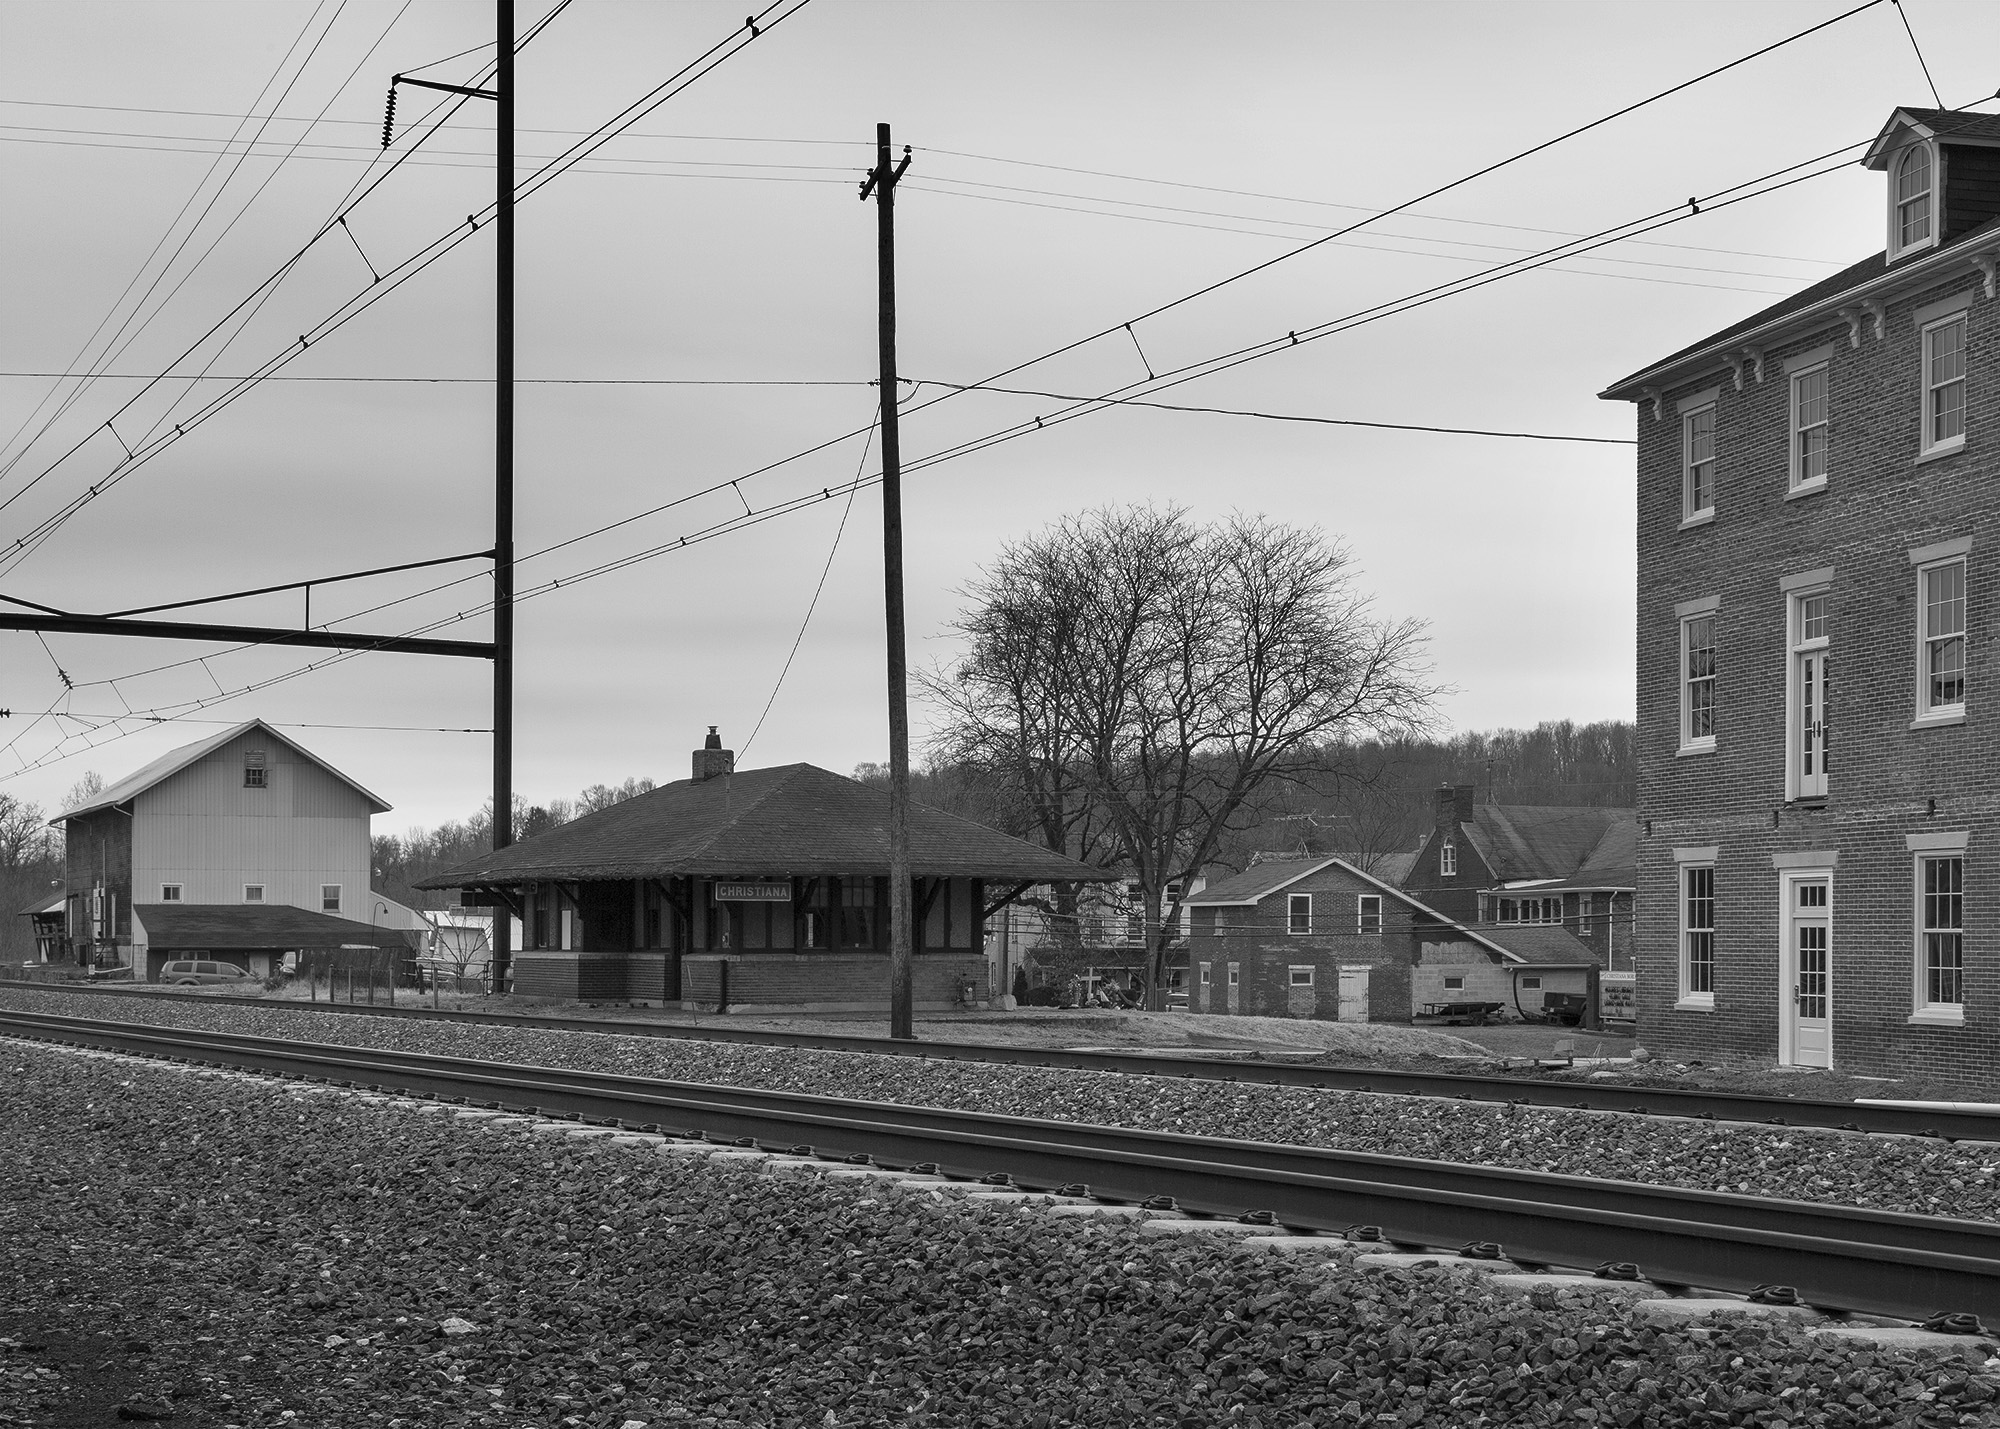 A modern-day view of the 1912 era Christiana train station. While manufacturing has left communities like this, the historical character and old buildings speak to the Borough's importance in industrial history throughout the United States in the 19th Century .